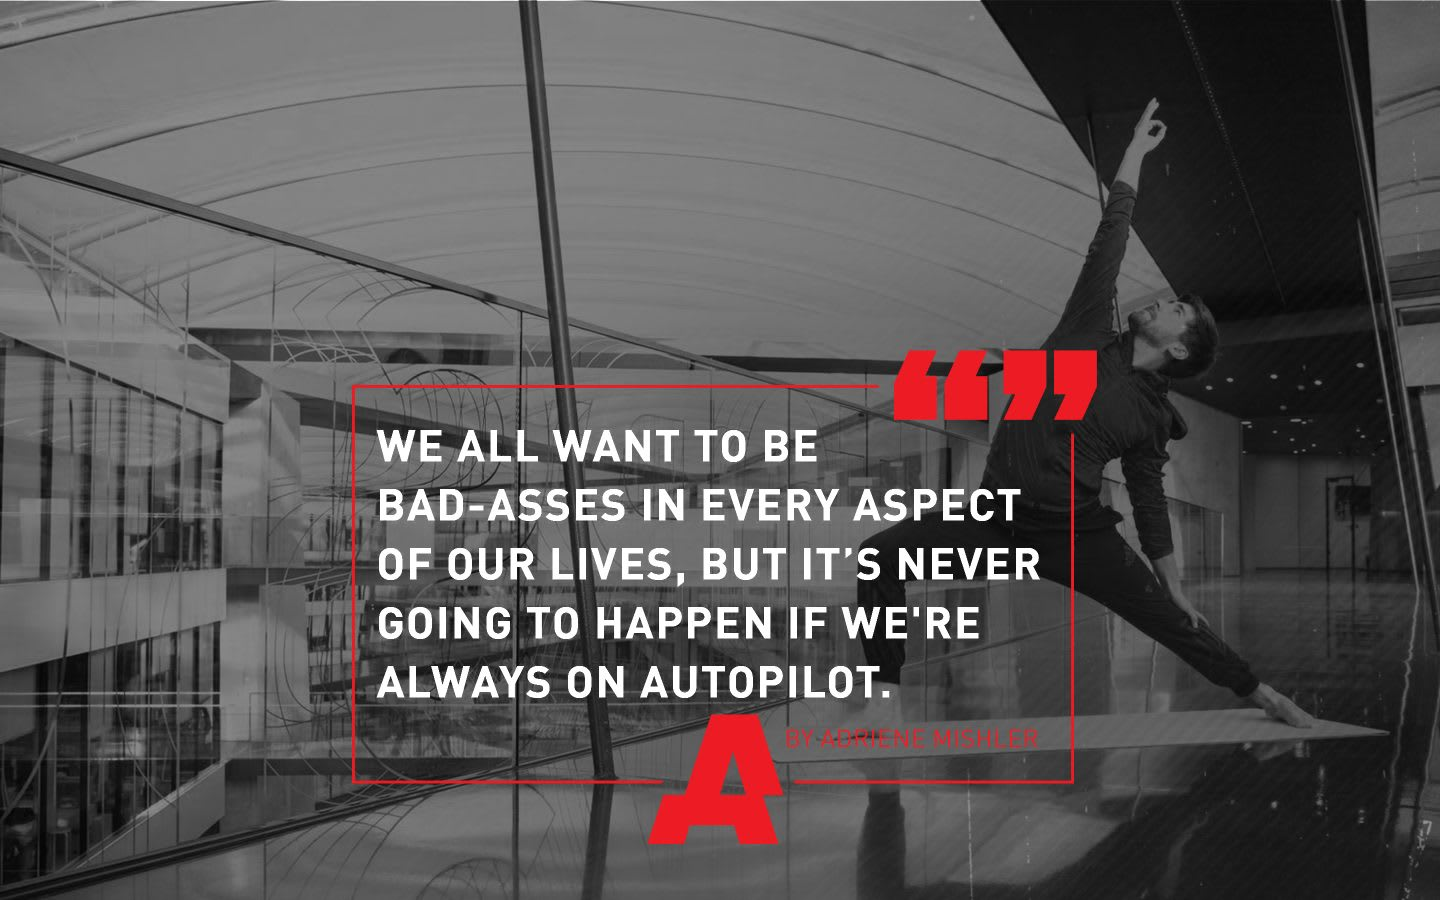 motivational quote, we all want to be bad-asses in every aspect of our lives, but it's never going to happen if we're always on autopilot, Adriene Mishler, GamePlan A